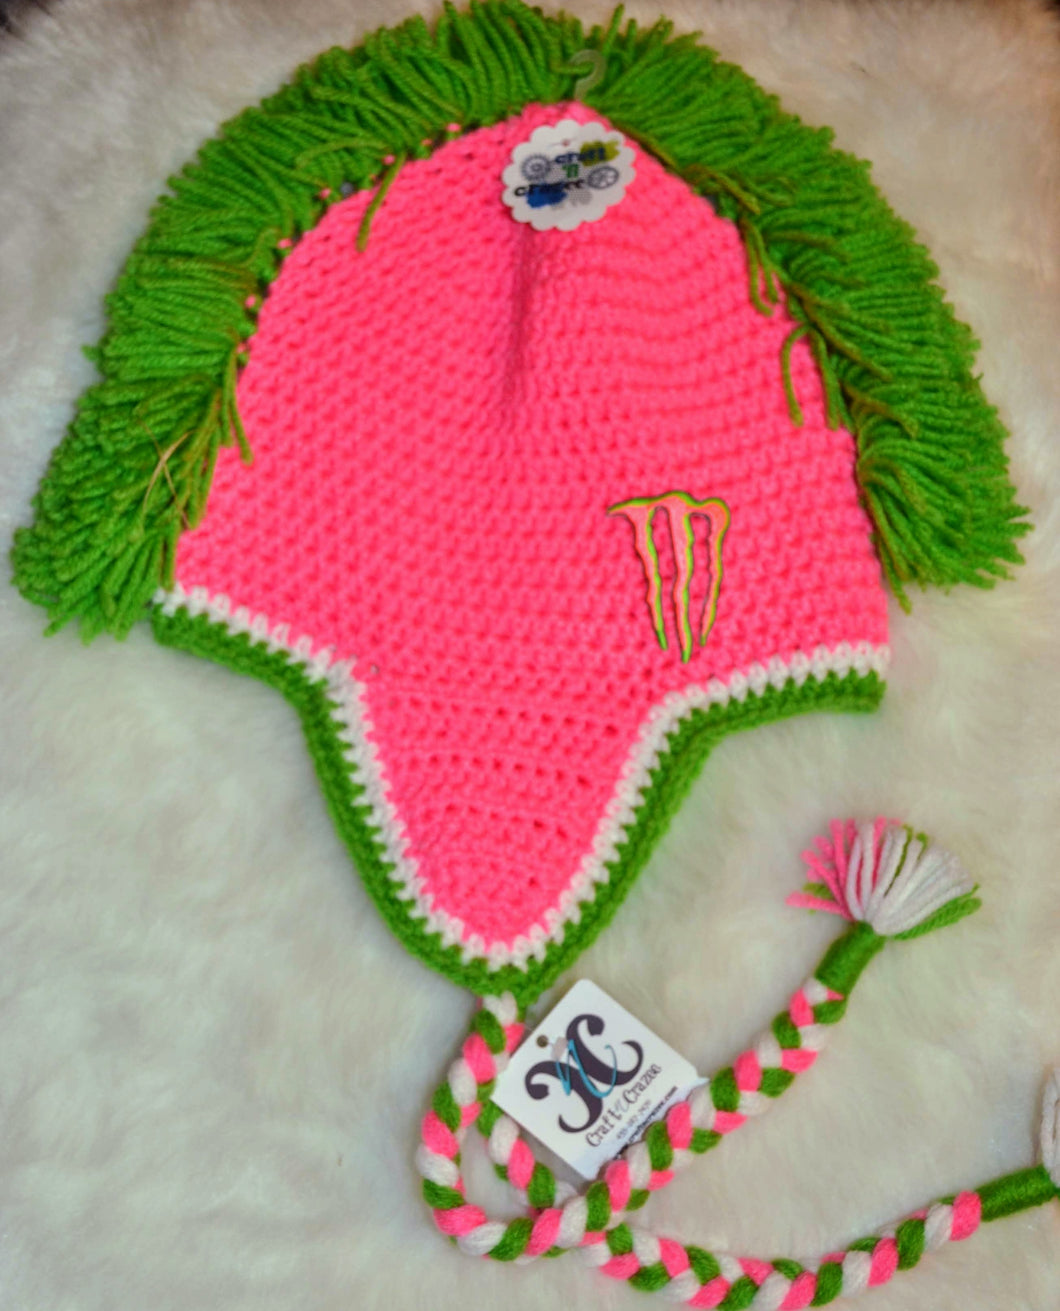 Bright Pink Monster Mohawk Beanie - Monster Winter Hat - Monster Energy Hat - Craft N Crazee